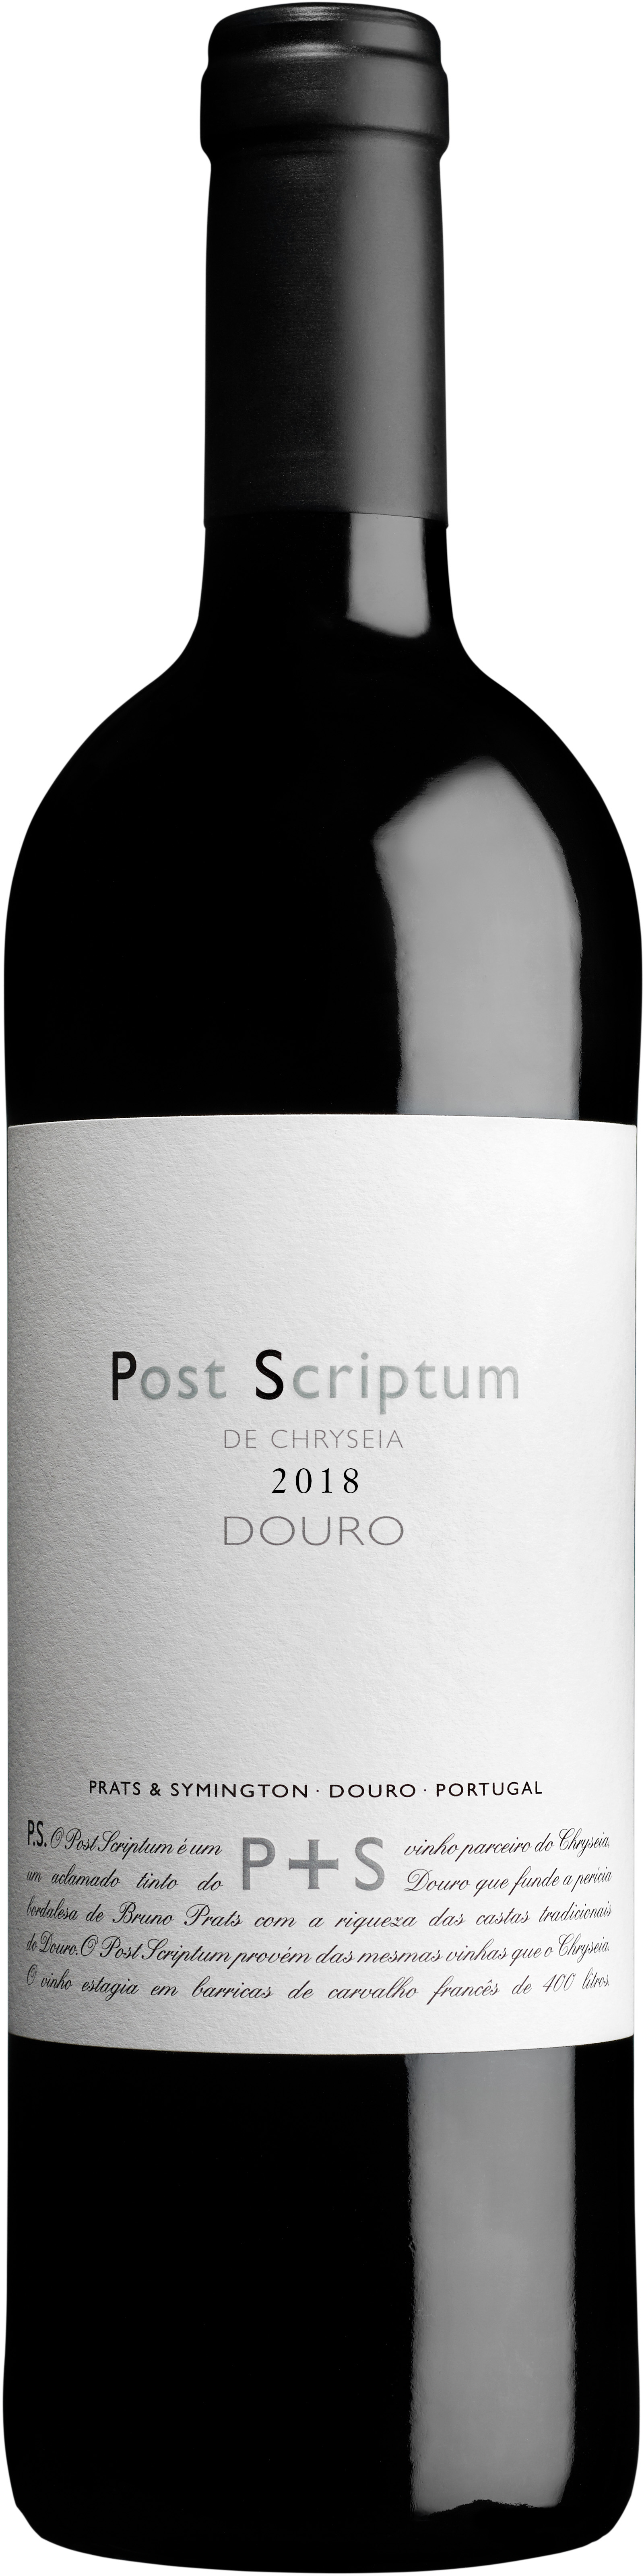 Product Image for P&S POST SCRIPTUM DE CHRYSEIA DOURO RED 2018